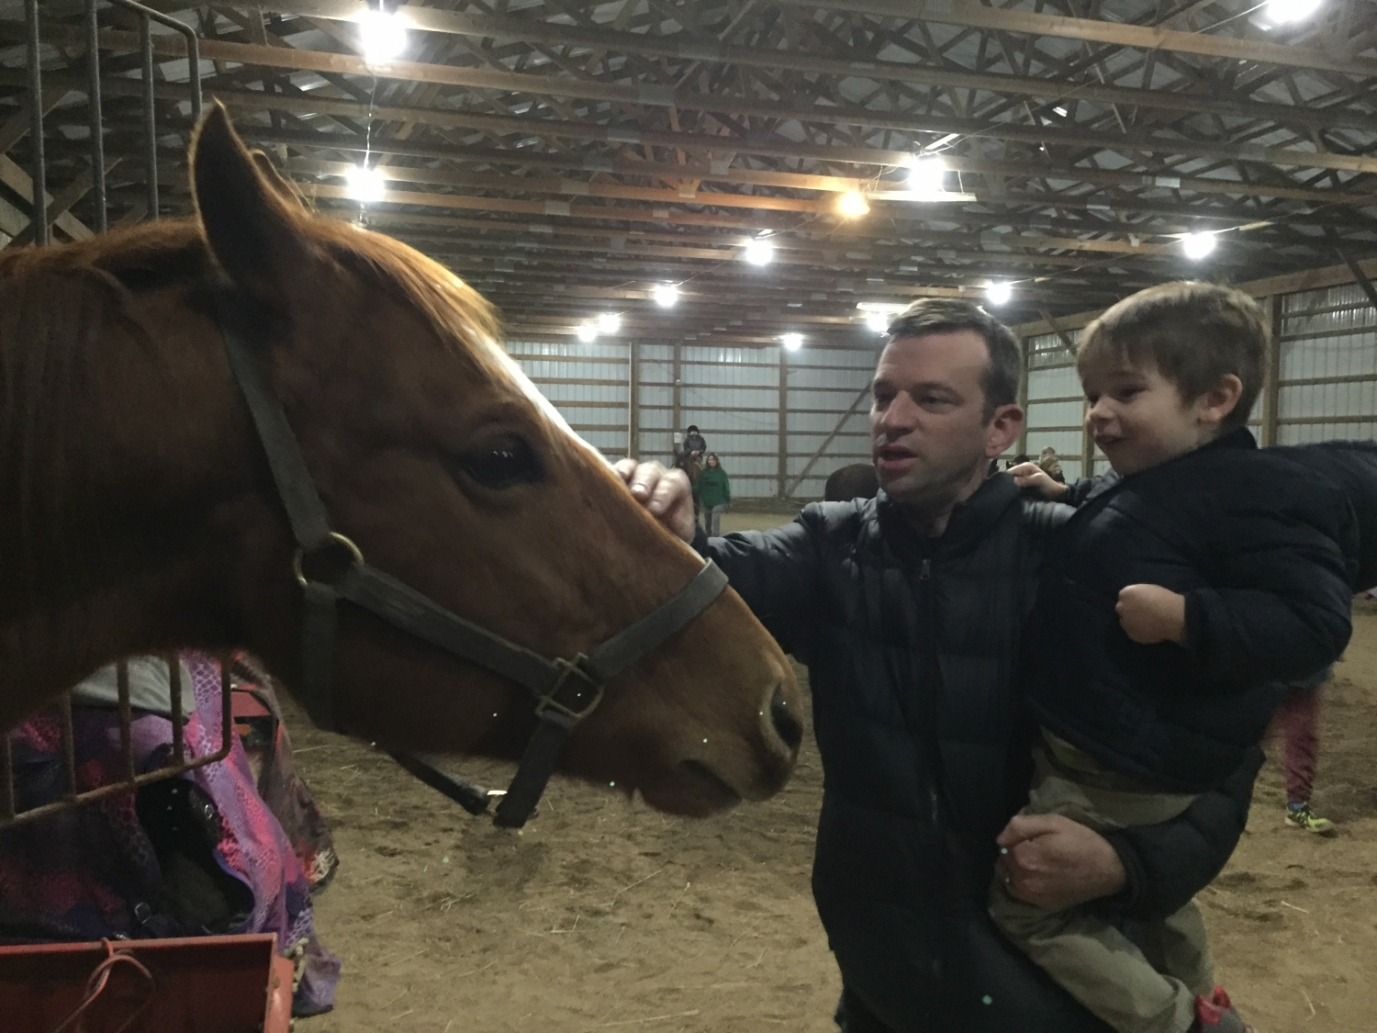 boy and dad petting a horse in Galloway, Ohio.